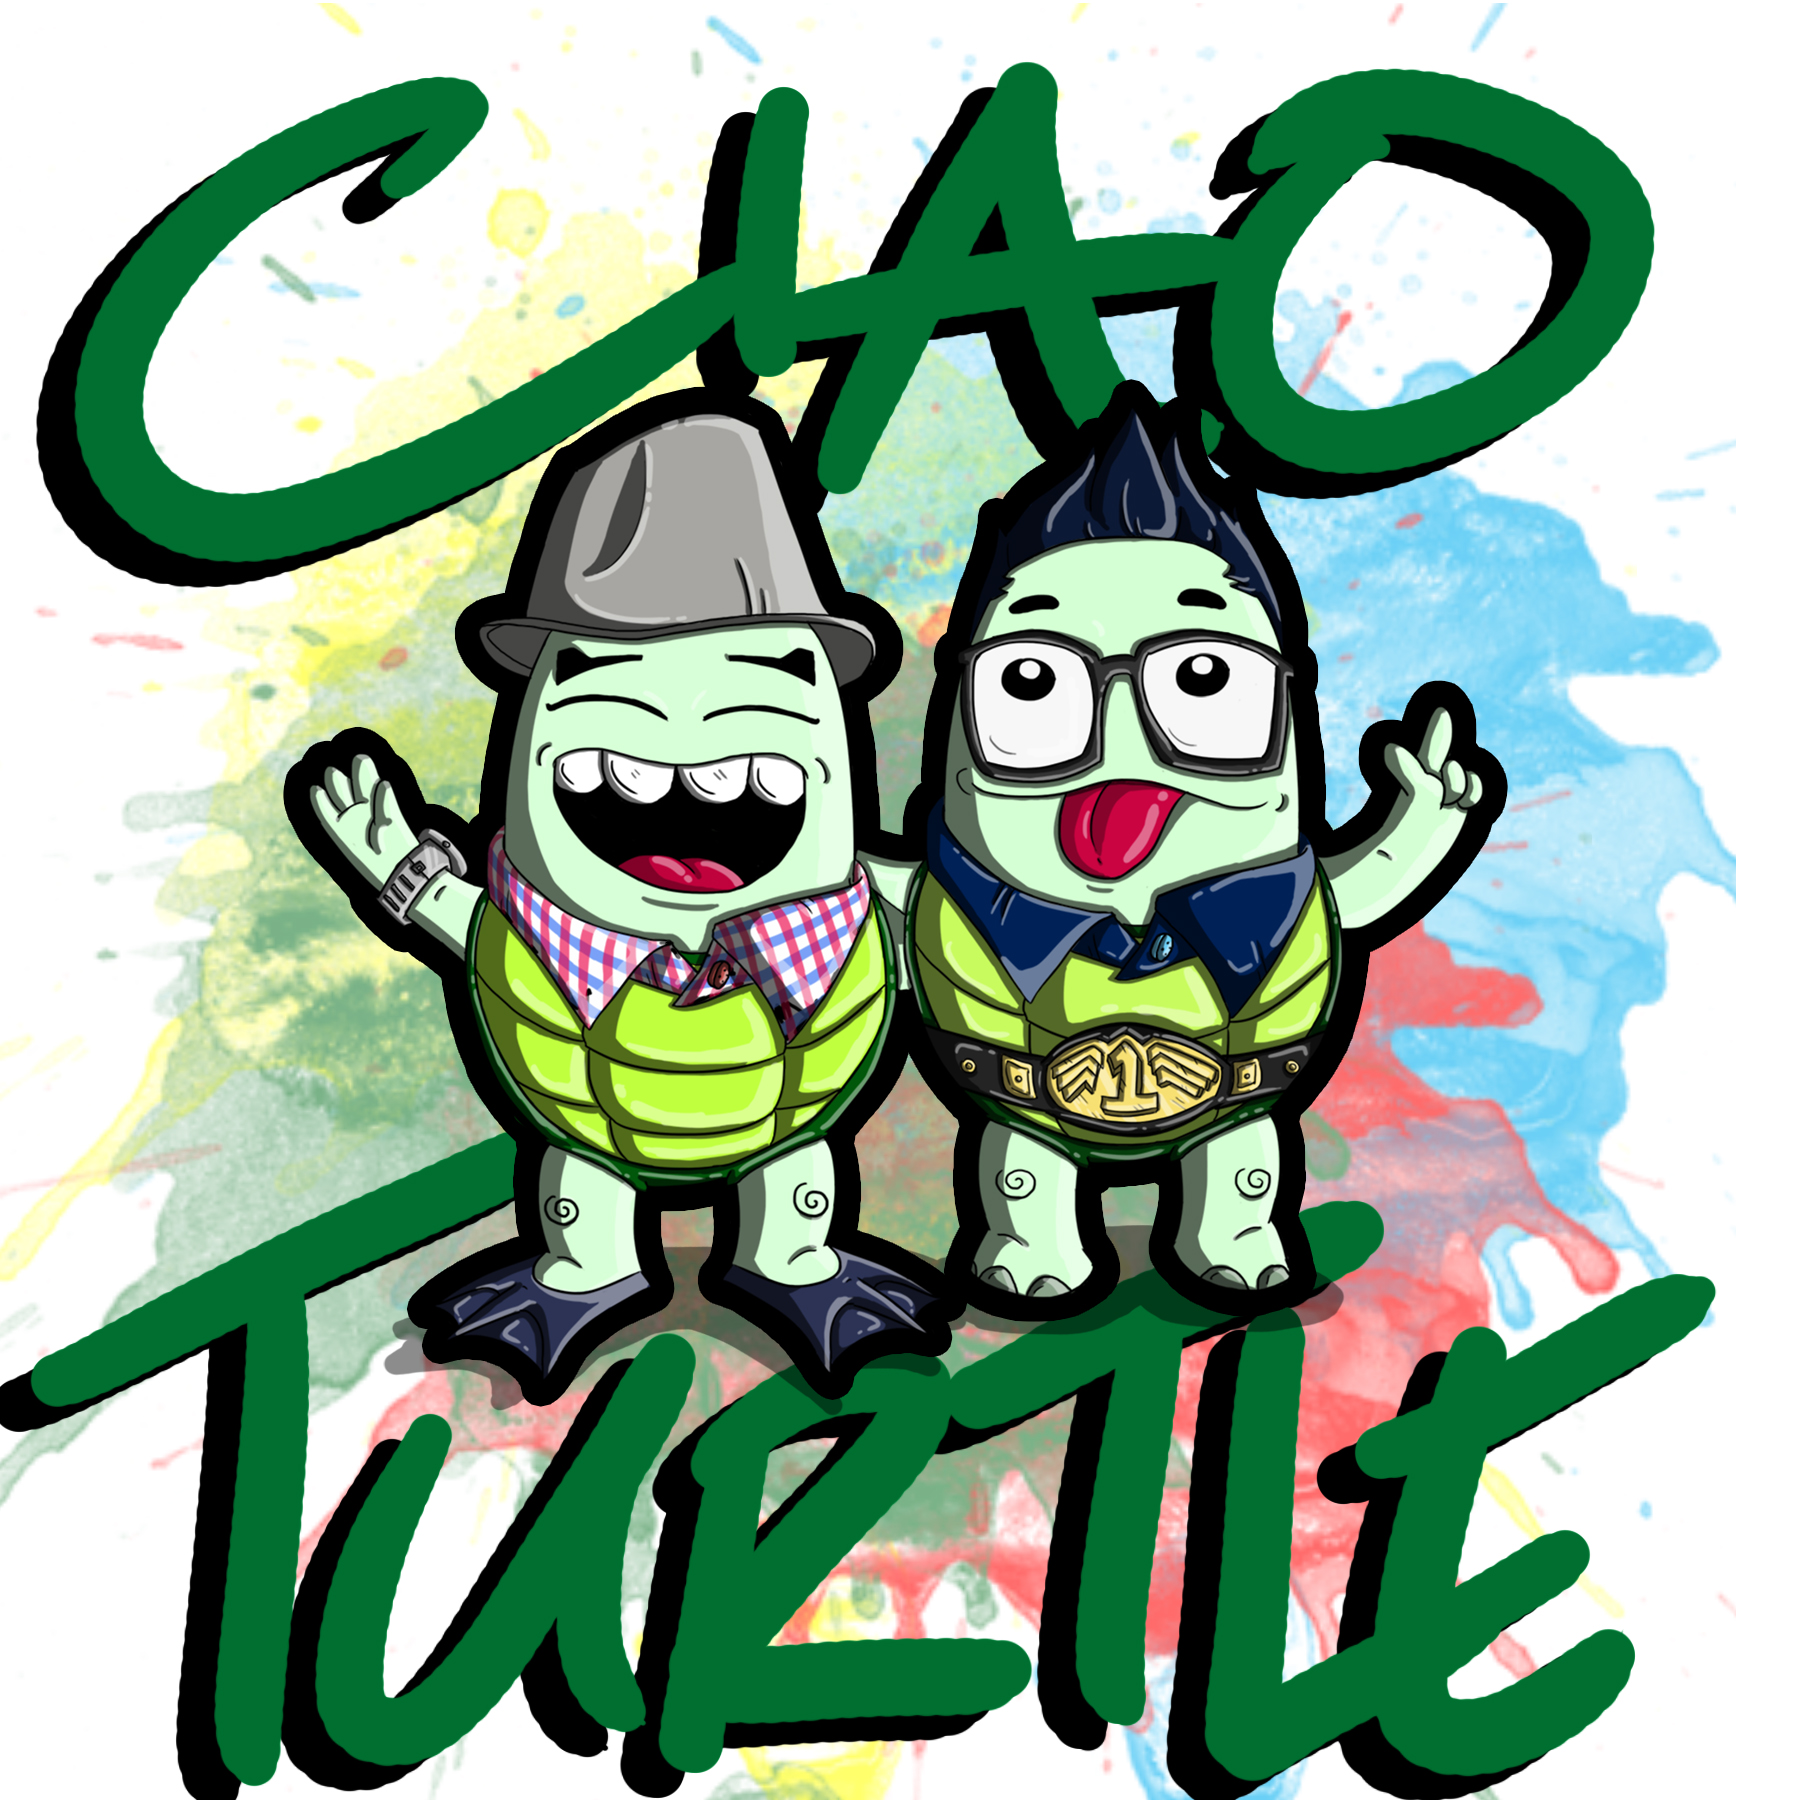 CIAO TURTLE ALBUM